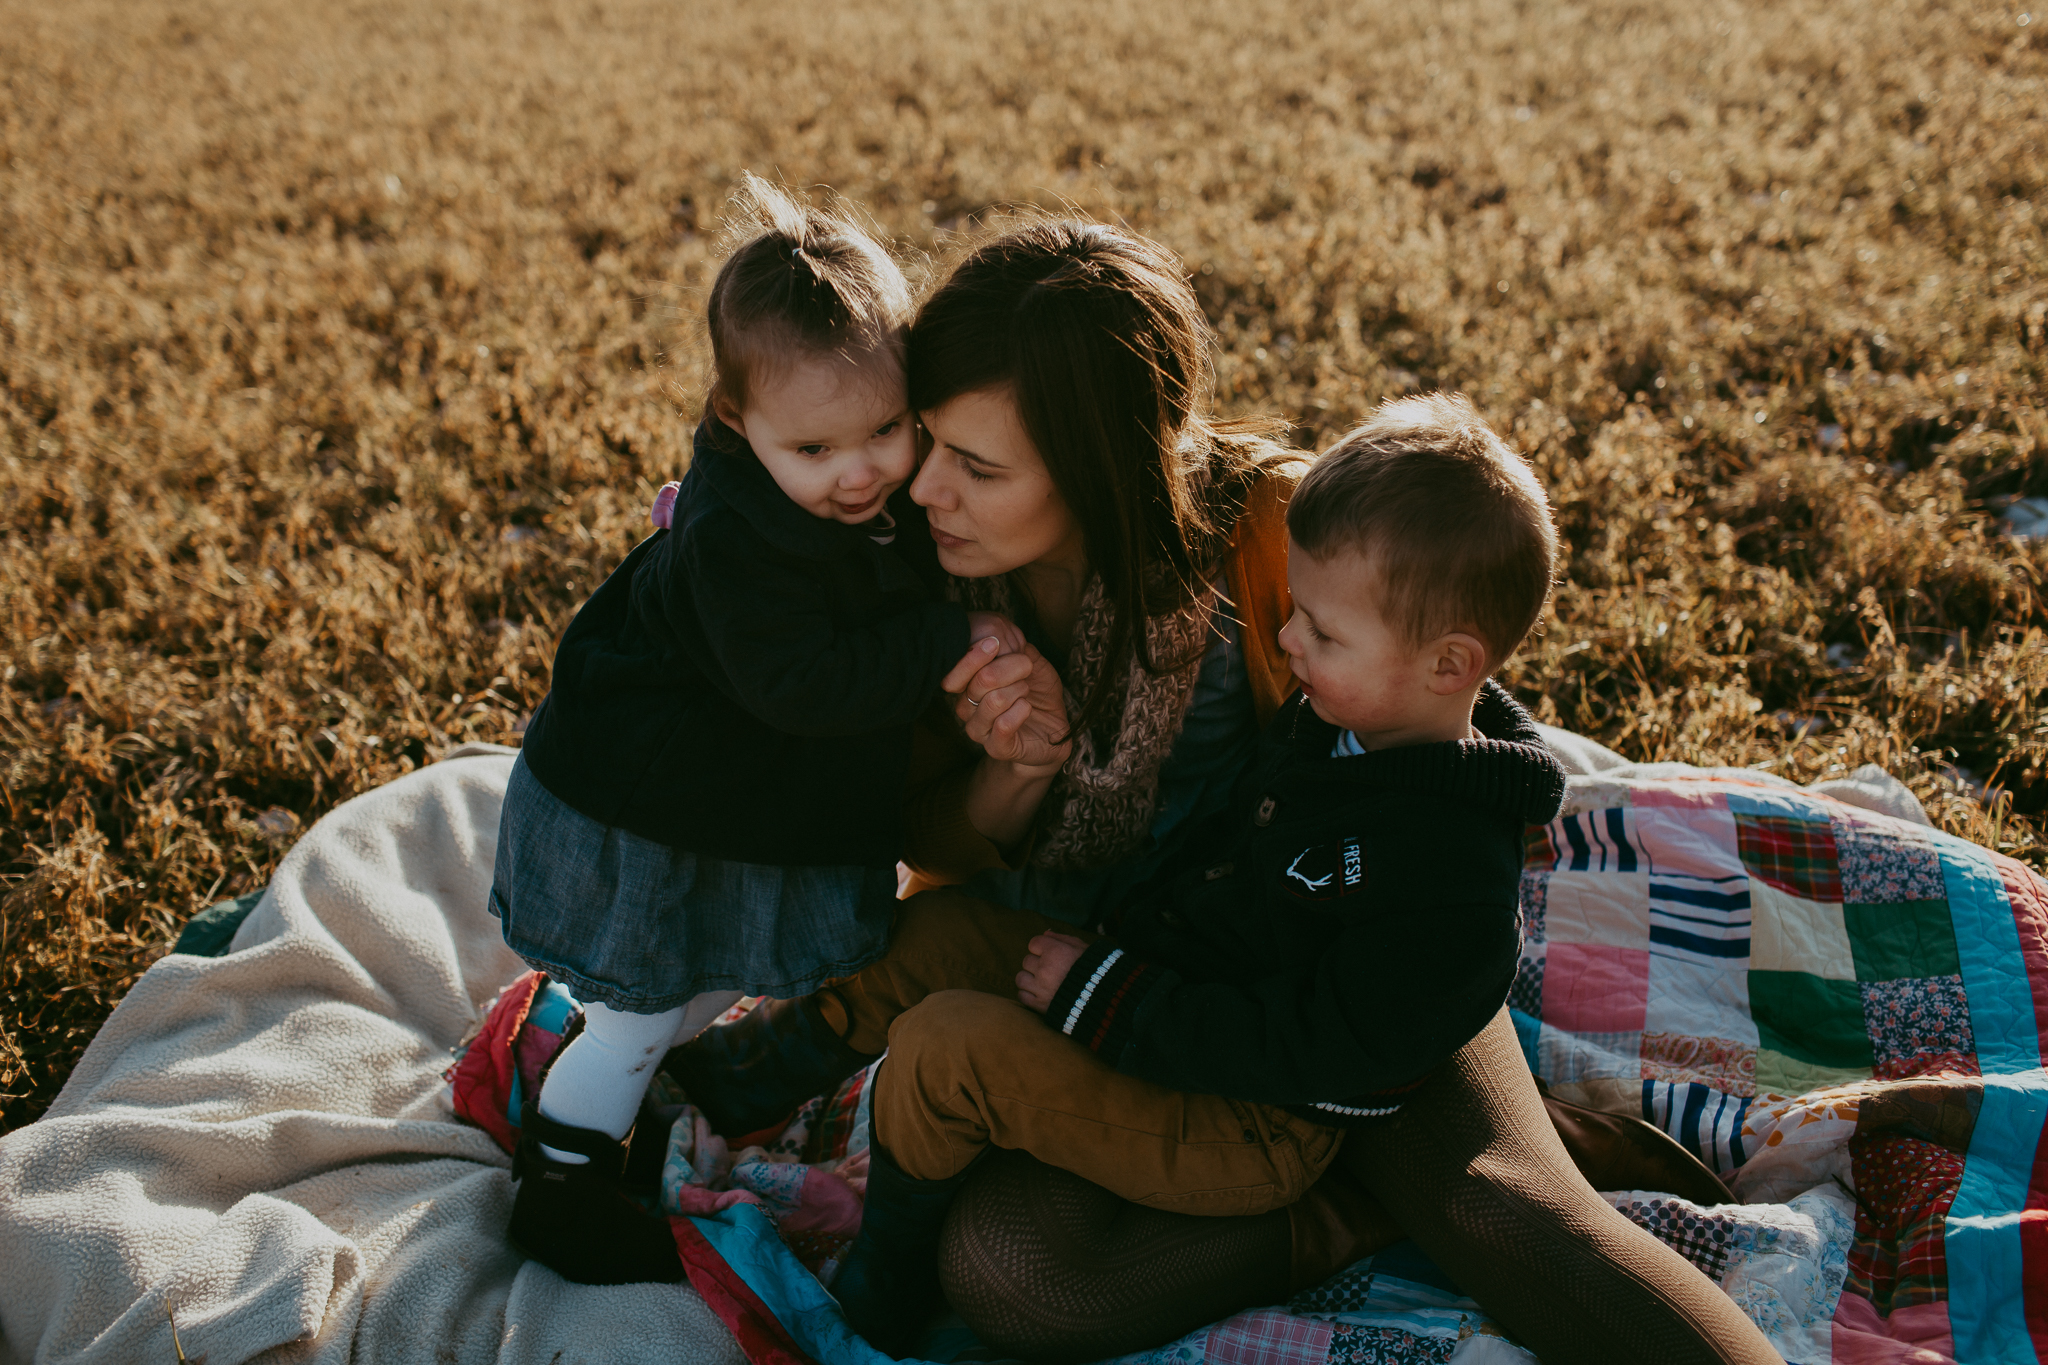 Mom with children on blanket in field